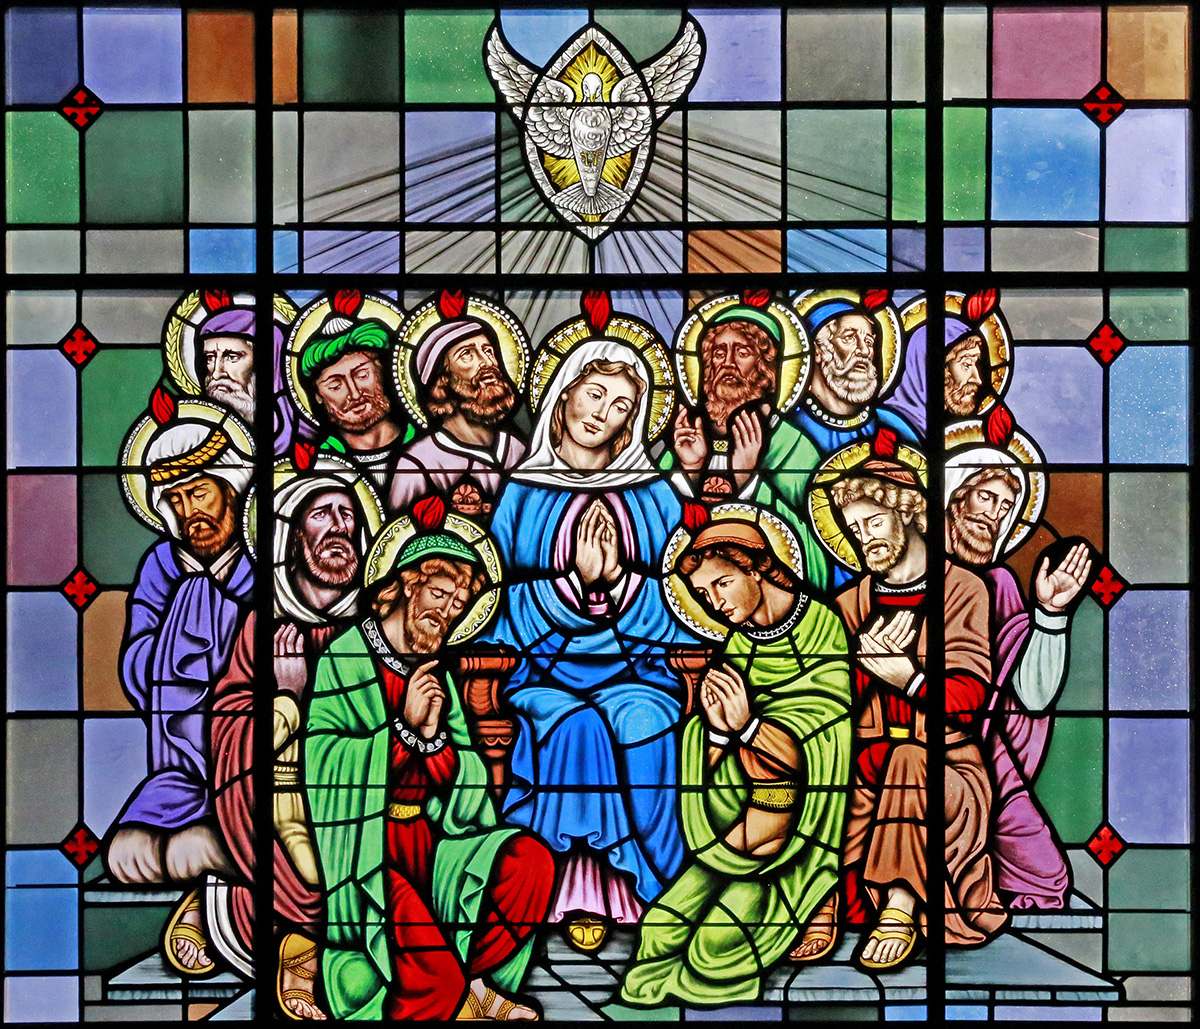 Pentecost: Let the Holy Spirit guide us